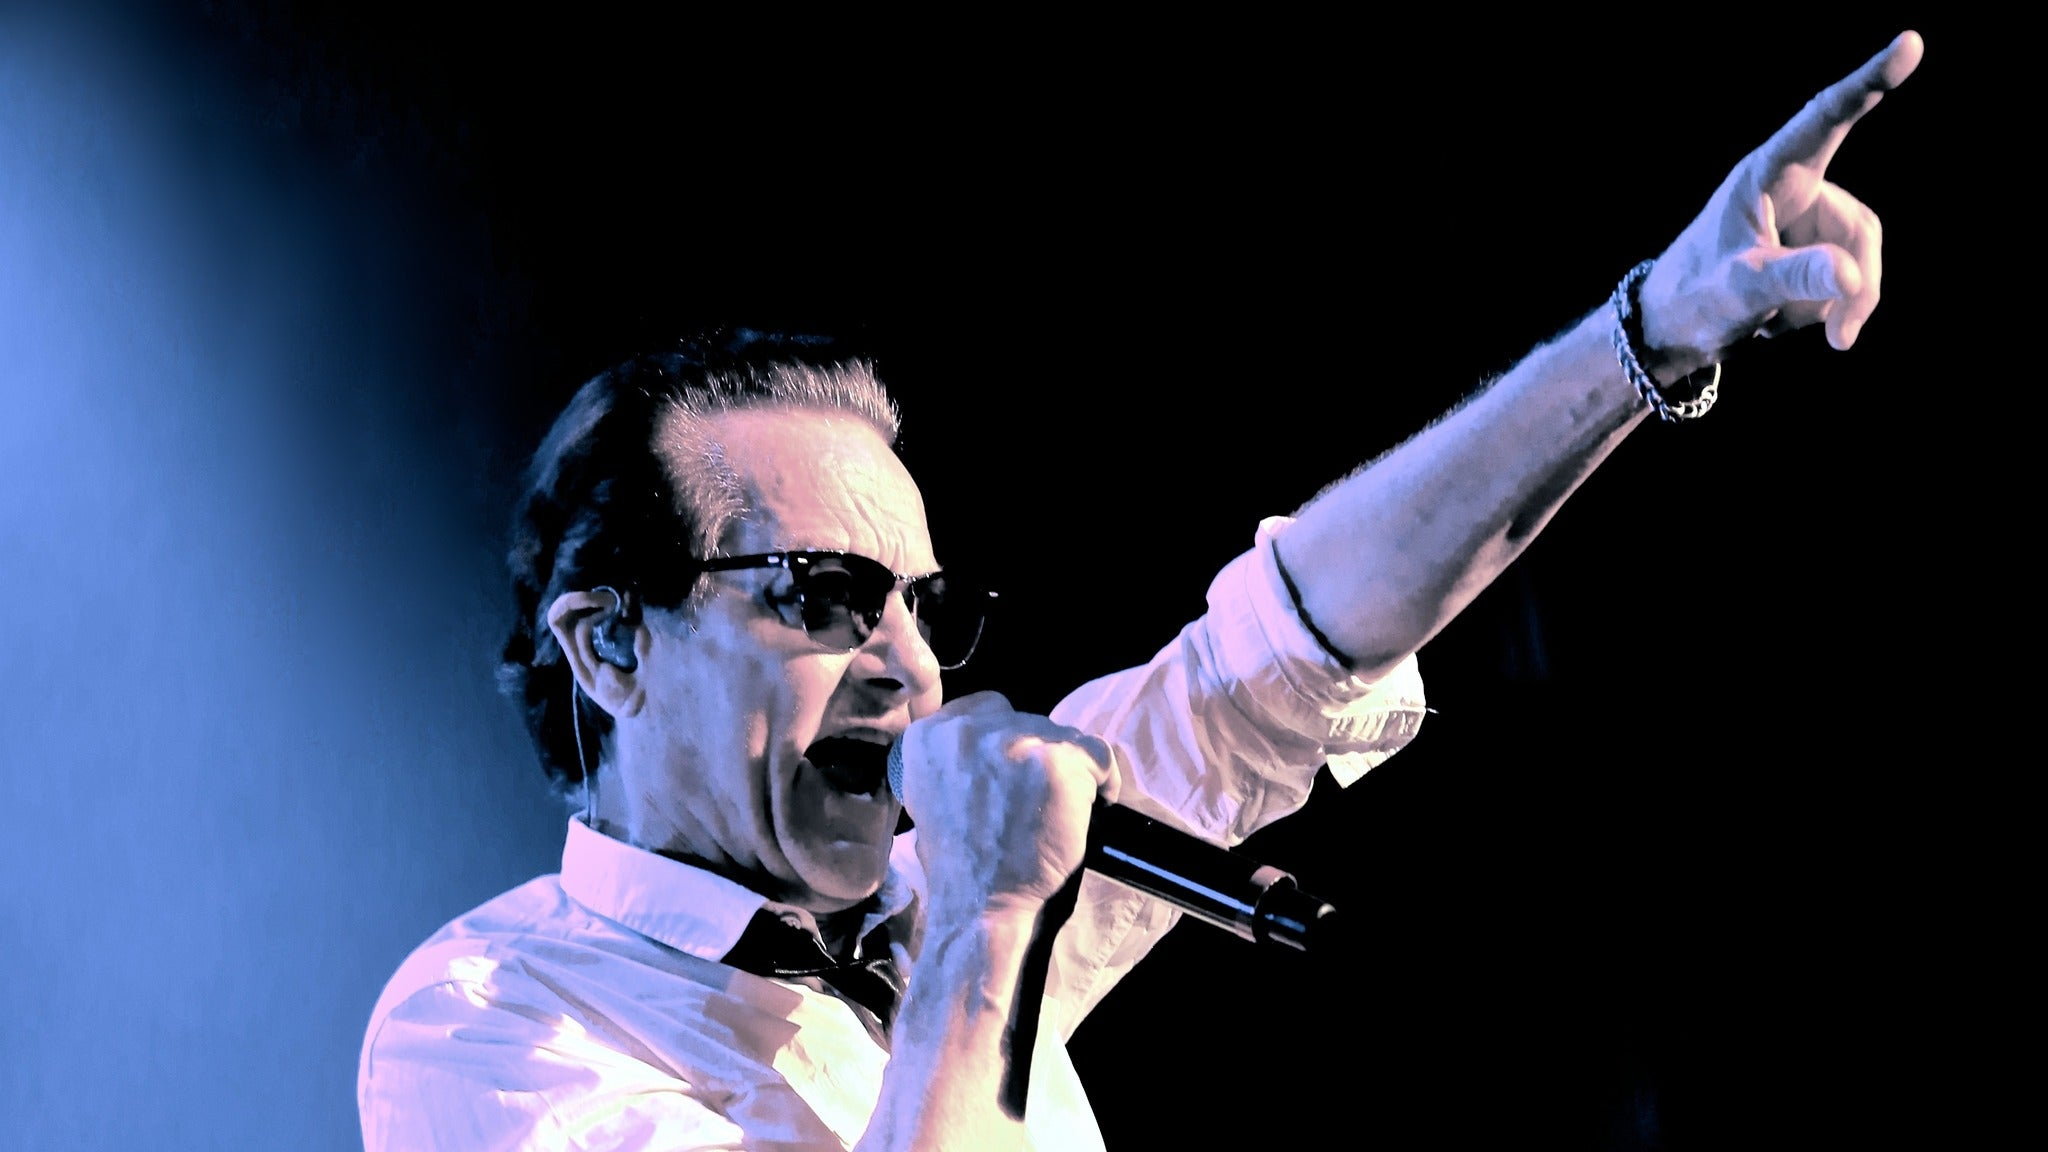 Graham Bonnet at The Forge